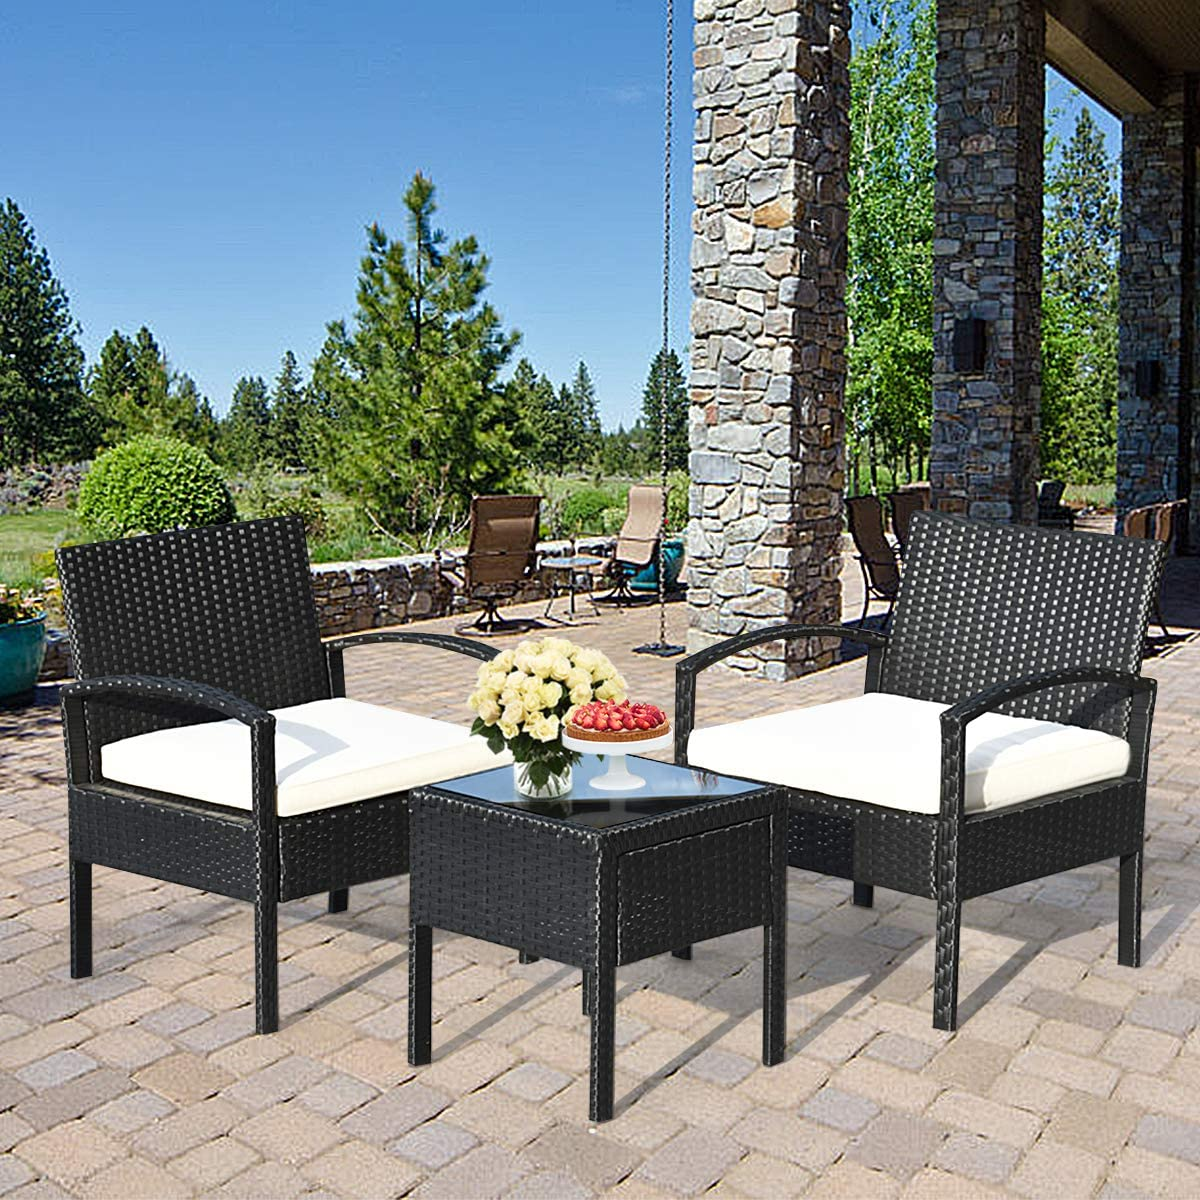 Tangkula AM0583HM 3 Piece Patio Furniture Set with 2 Cushioned Chairs & End Table, Black: Garden & Outdoor